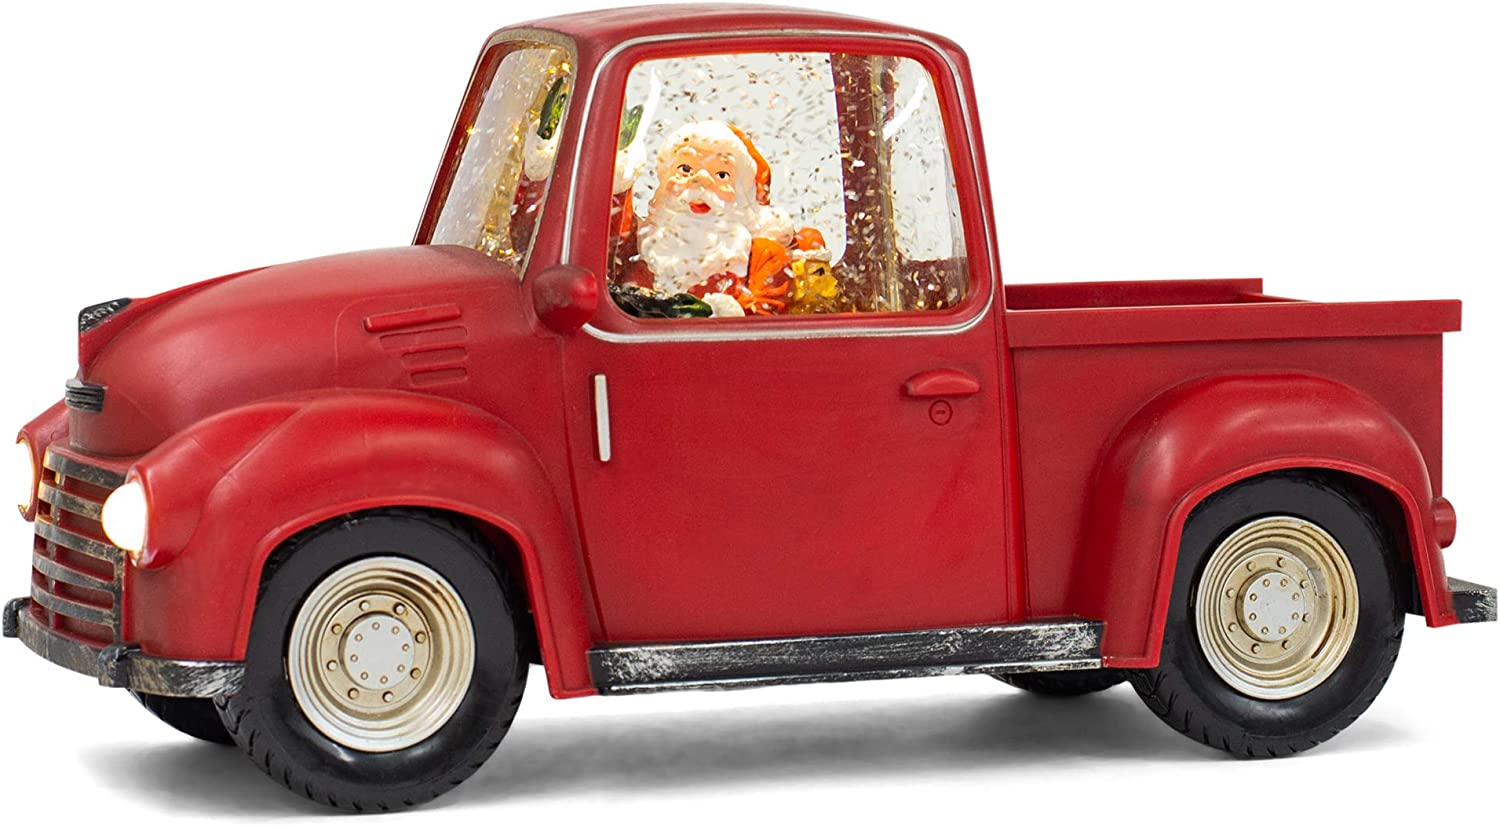 Red Santa Vintage Truck LED 6 x 3 Acrylic Decorative Tabletop Figurine